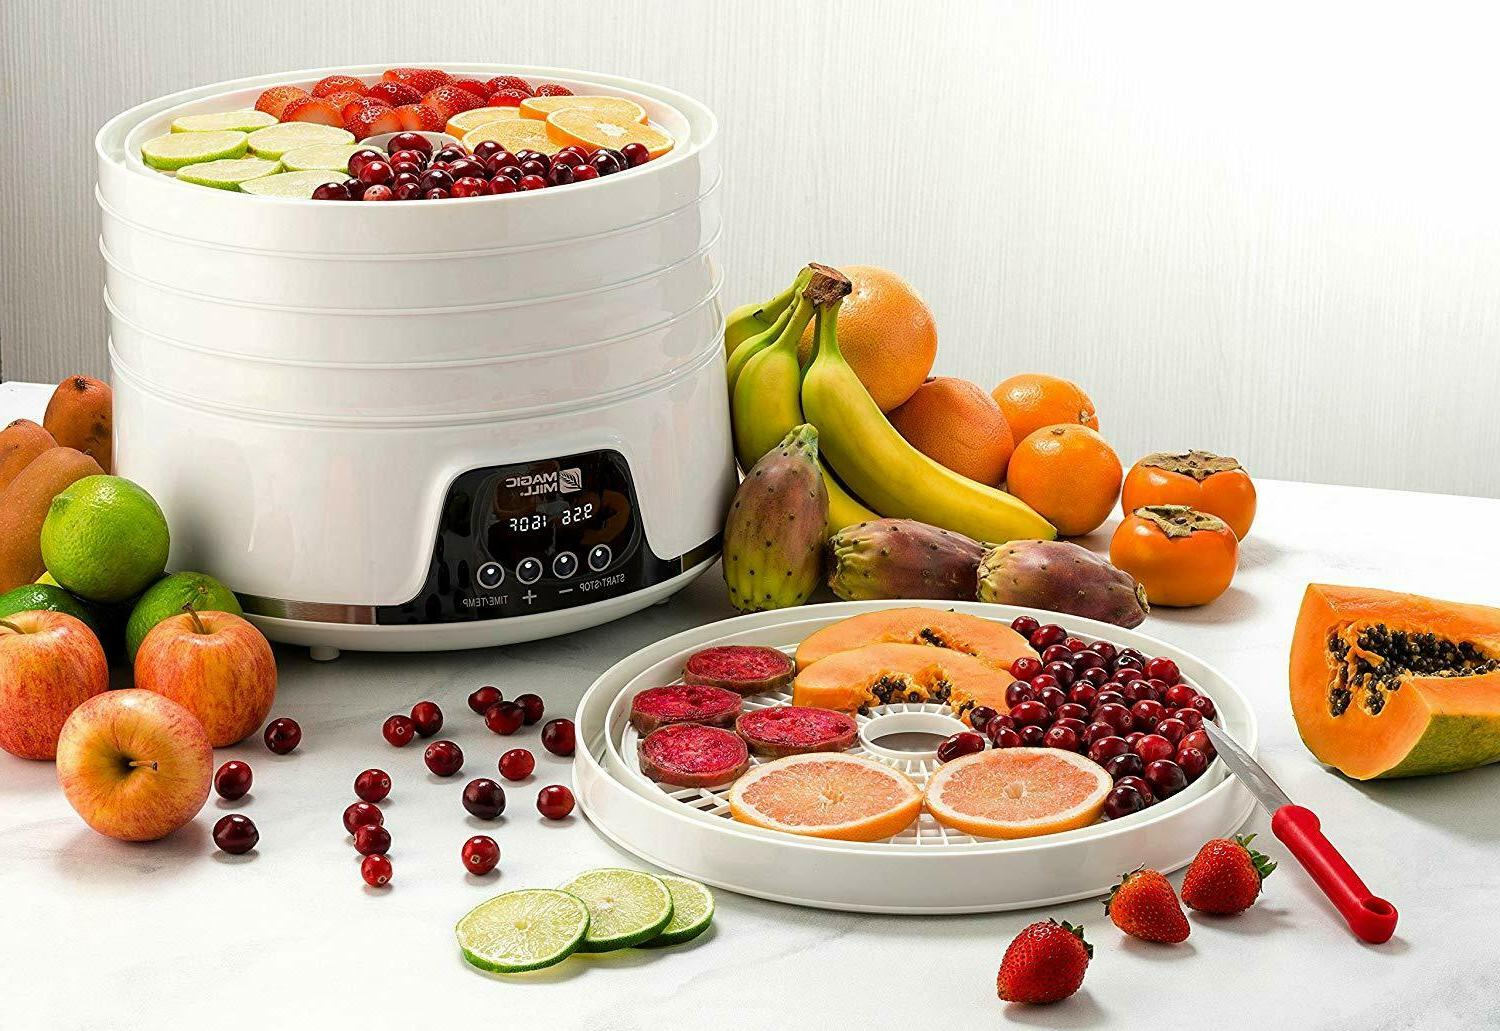 Magic Commercial pro 5 Food Dehydrator with